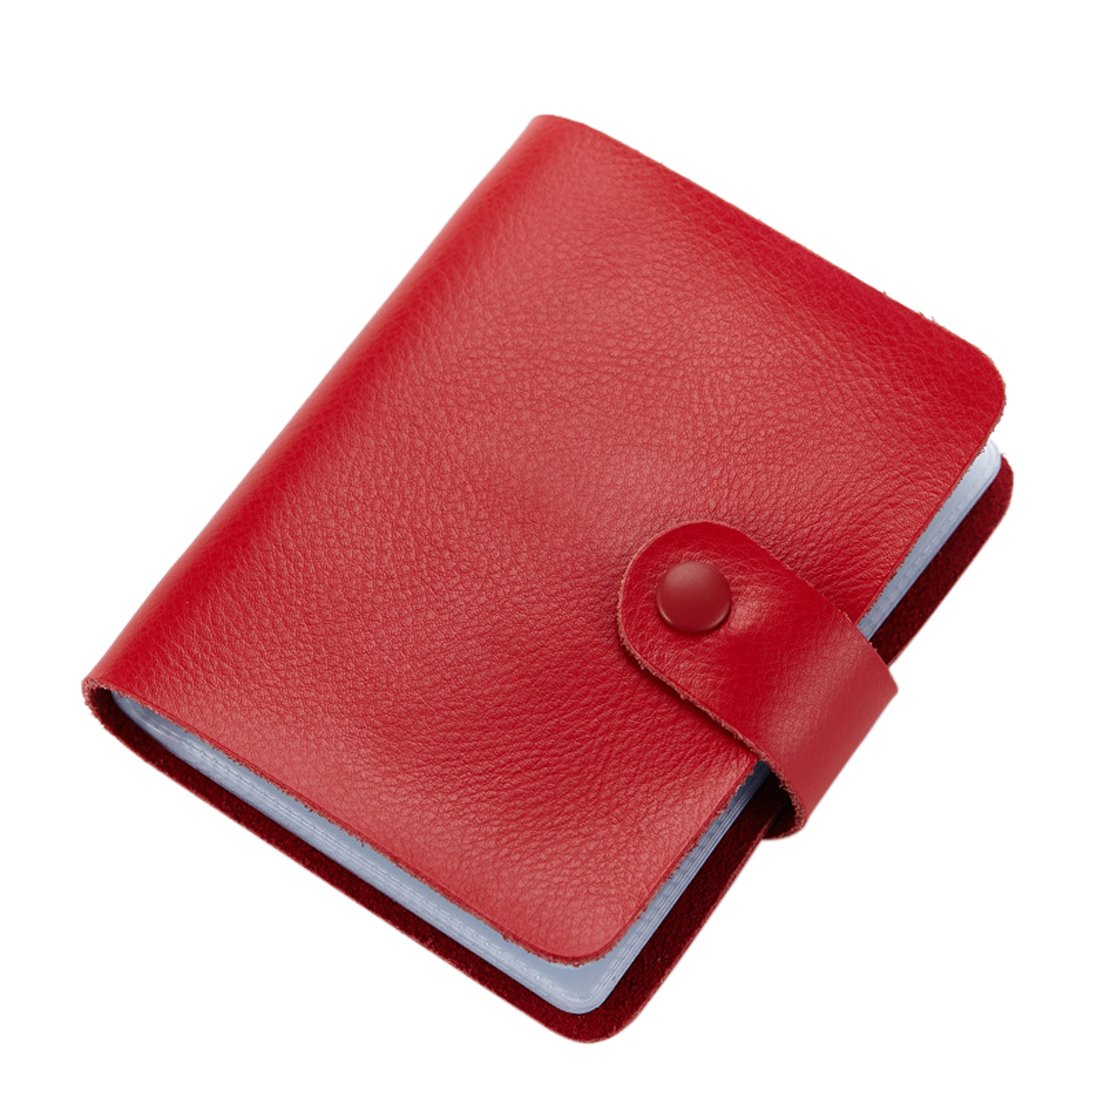 Business Card Holder, Boshiho Genuine Leather Credit Name ID Card Holder Book, Office Journal Business Cards Organizer (Red)